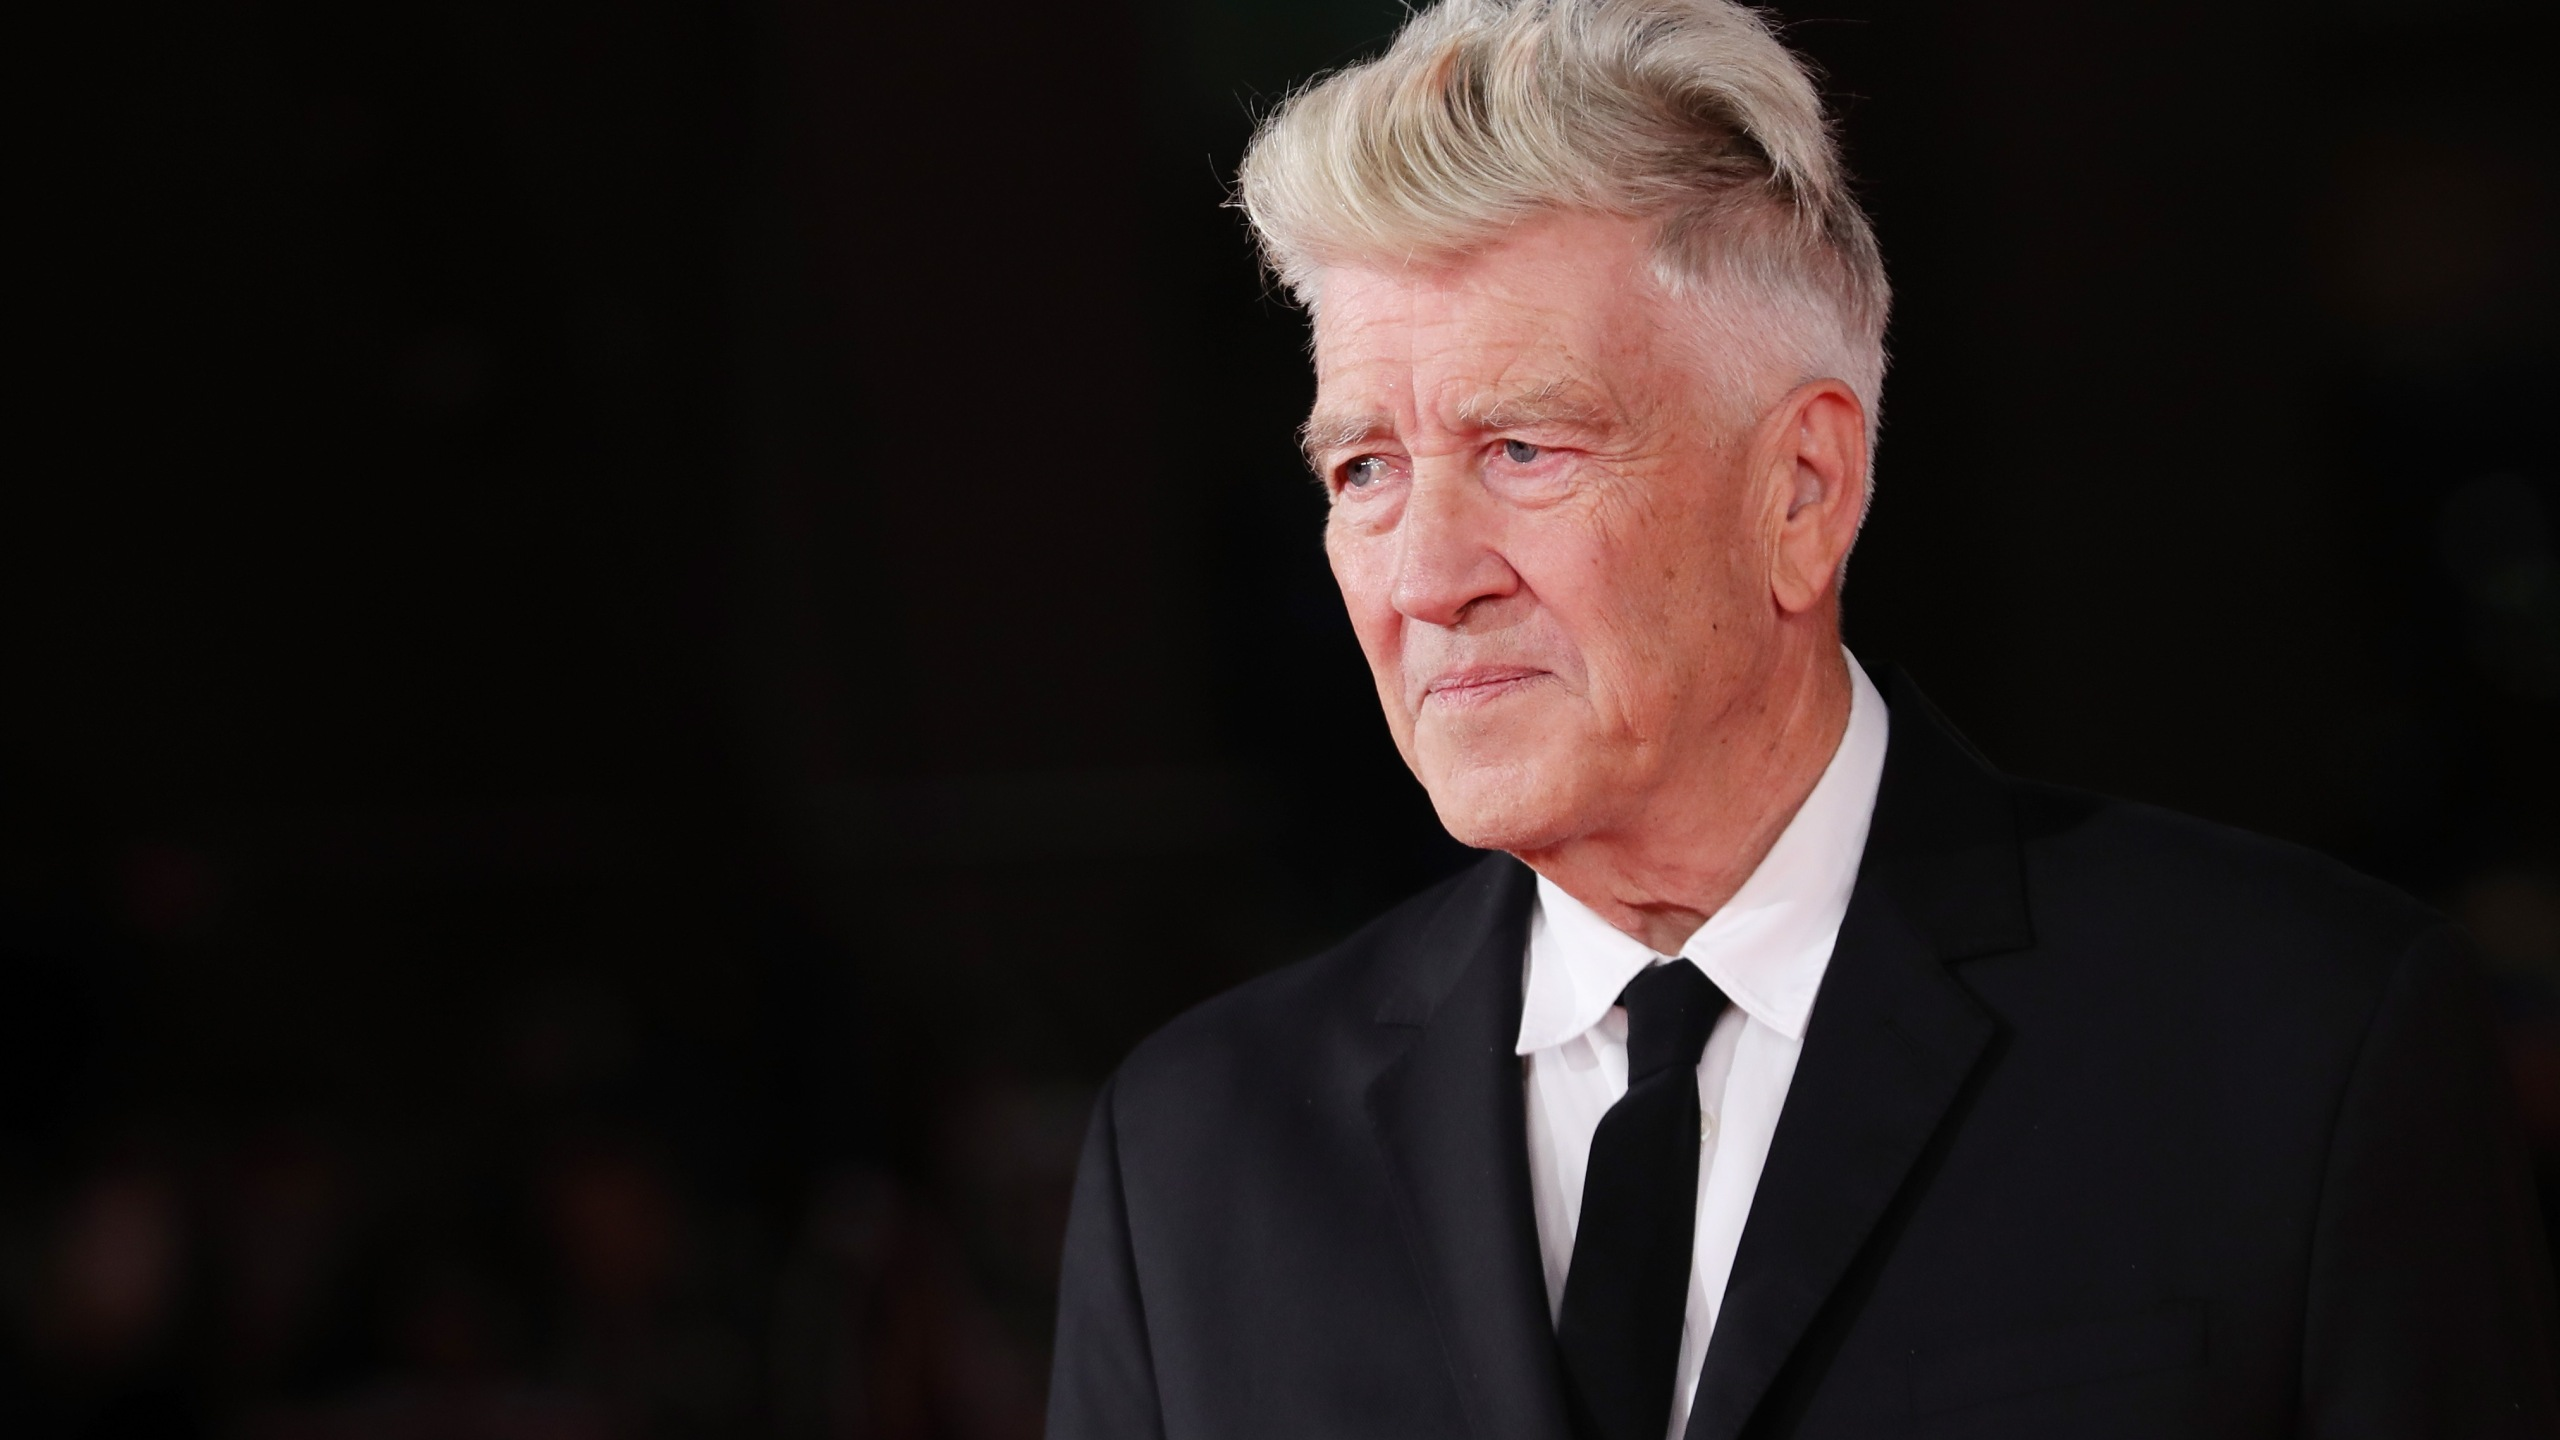 David Lynch walks the red carpet during the 12th Rome Film Fest at Auditorium Parco Della Musica on Nov. 4, 2017 in Rome. (Credit: Vittorio Zunino Celotto/Getty Images)